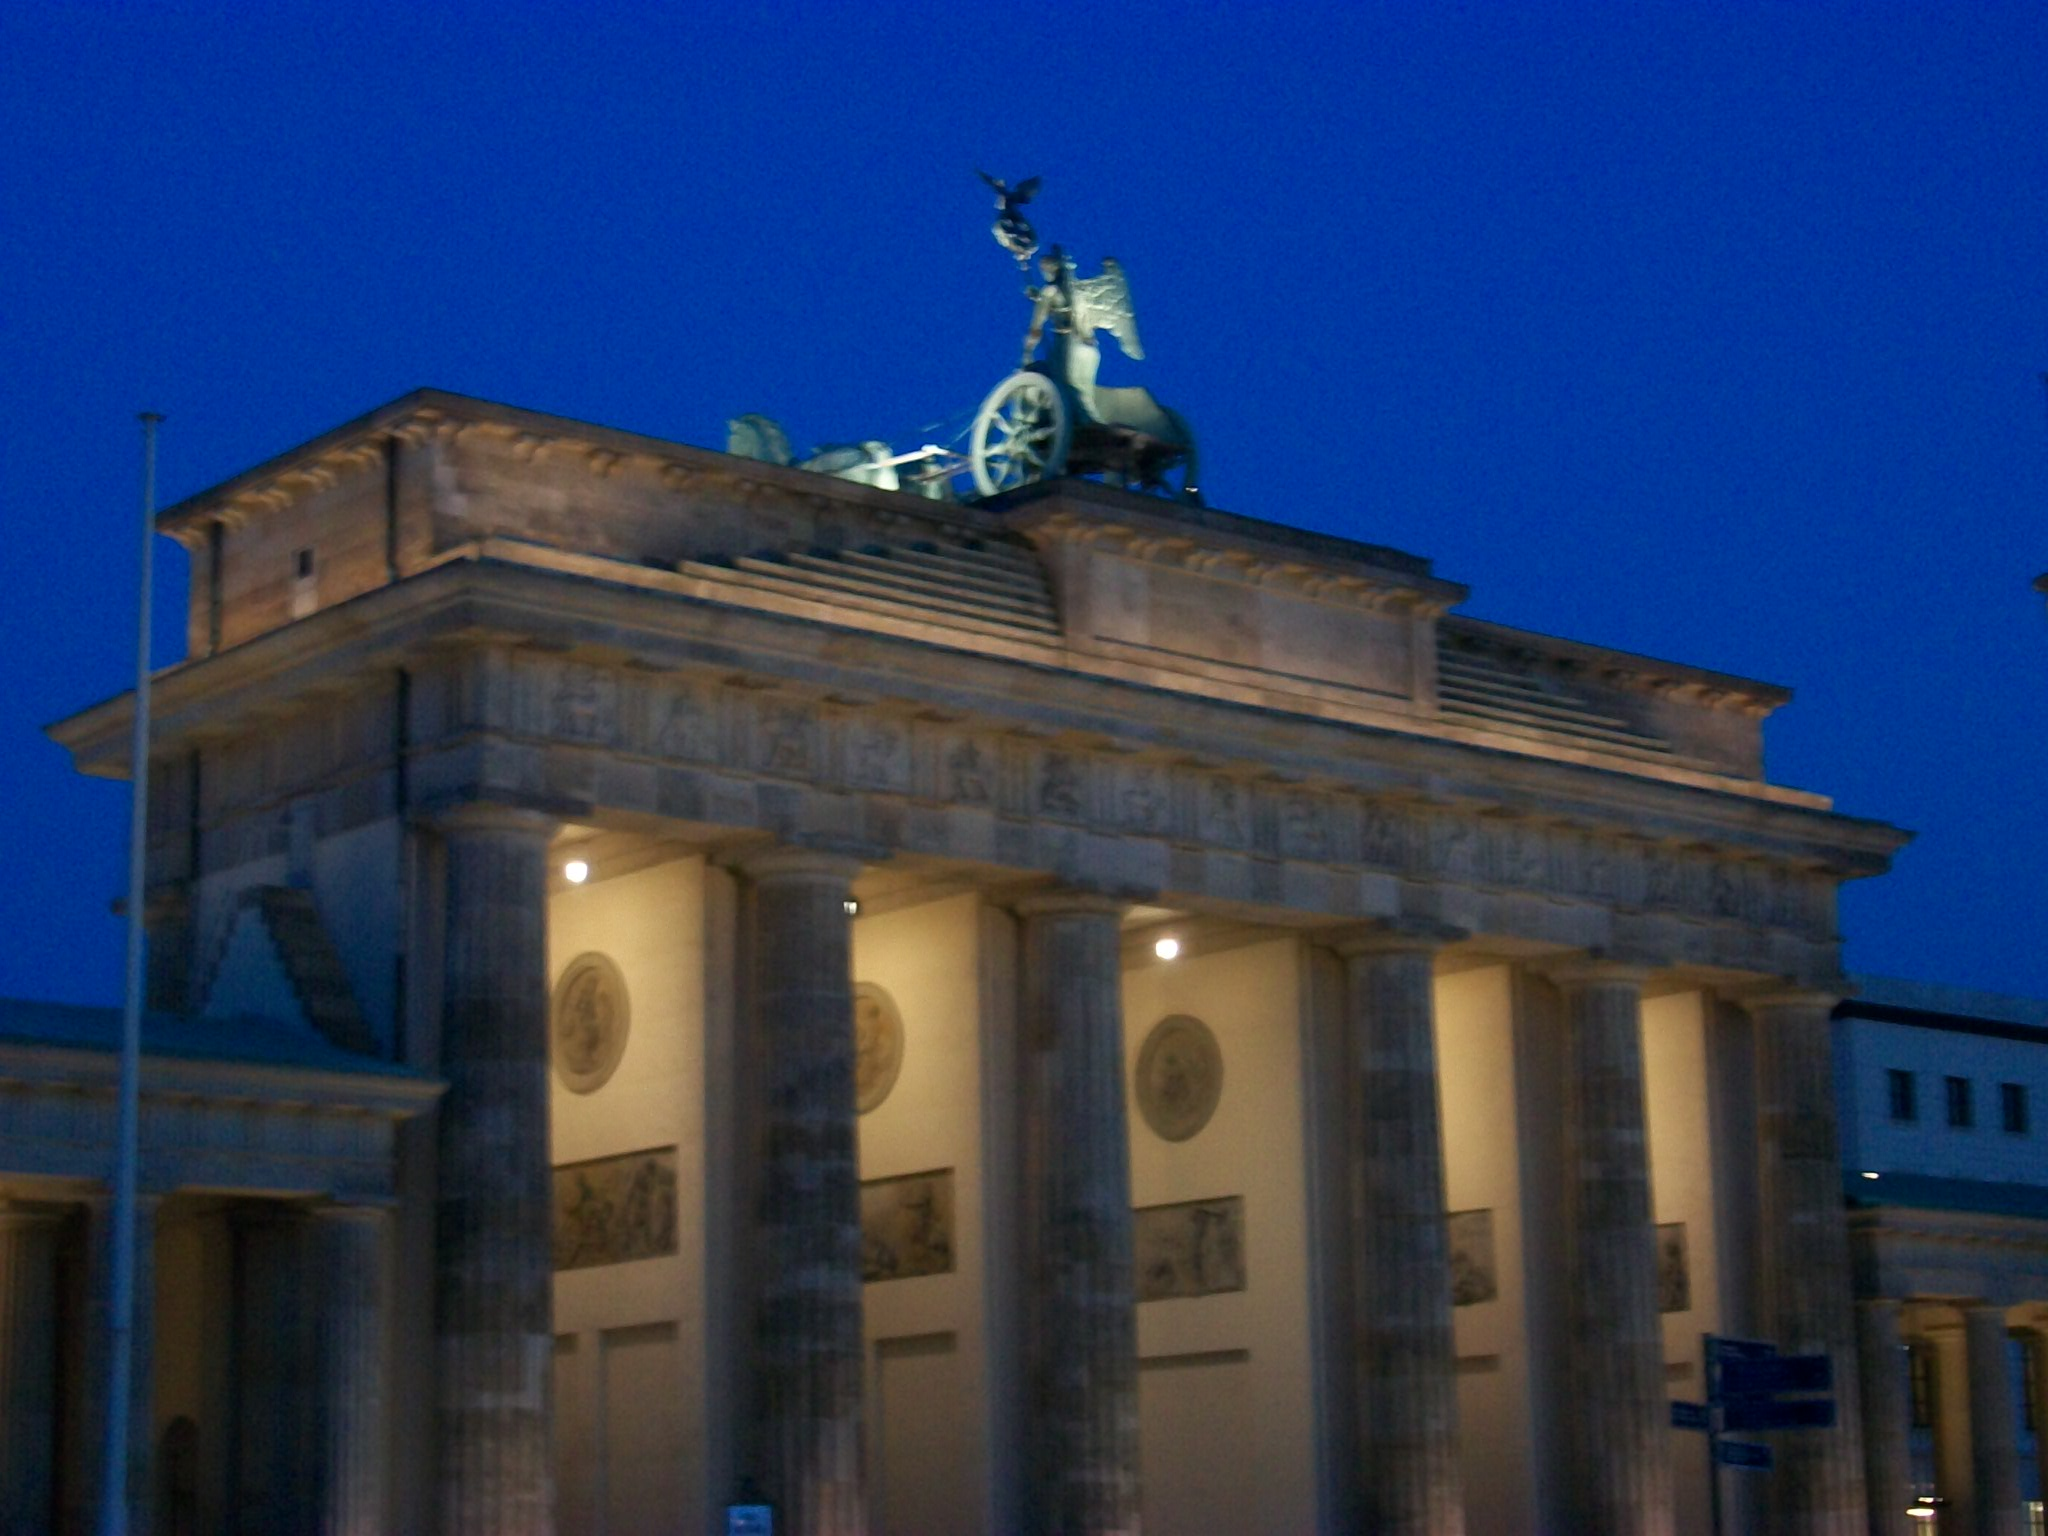 The Brandenburg Gate stands at the top of the Unter den Linden and has become the iconic image of Berlin. Between 1961 and 1989 the wall which separated east from west passed right through this point in the city. The figure on the top of the gate is Viktoria, the goddess of victory. The statue was t...